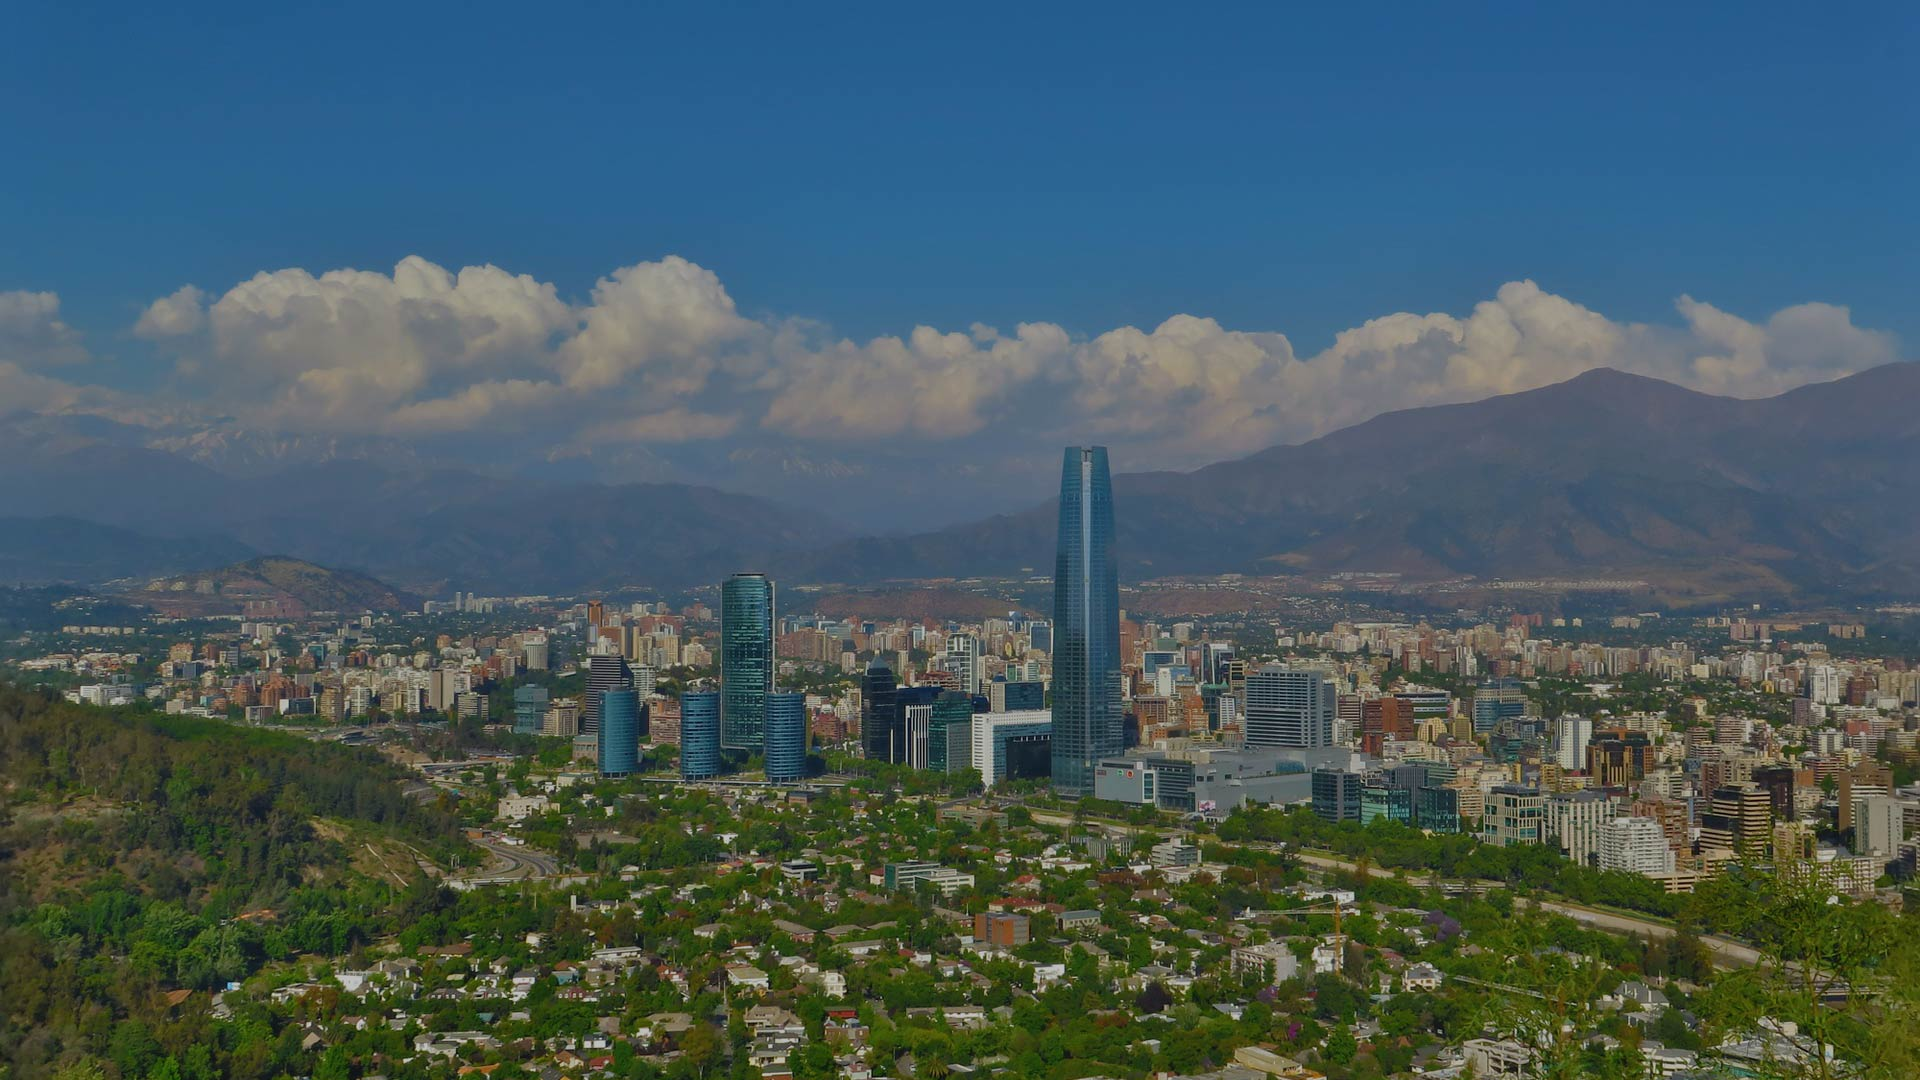 Top 10 Tips For Santiago